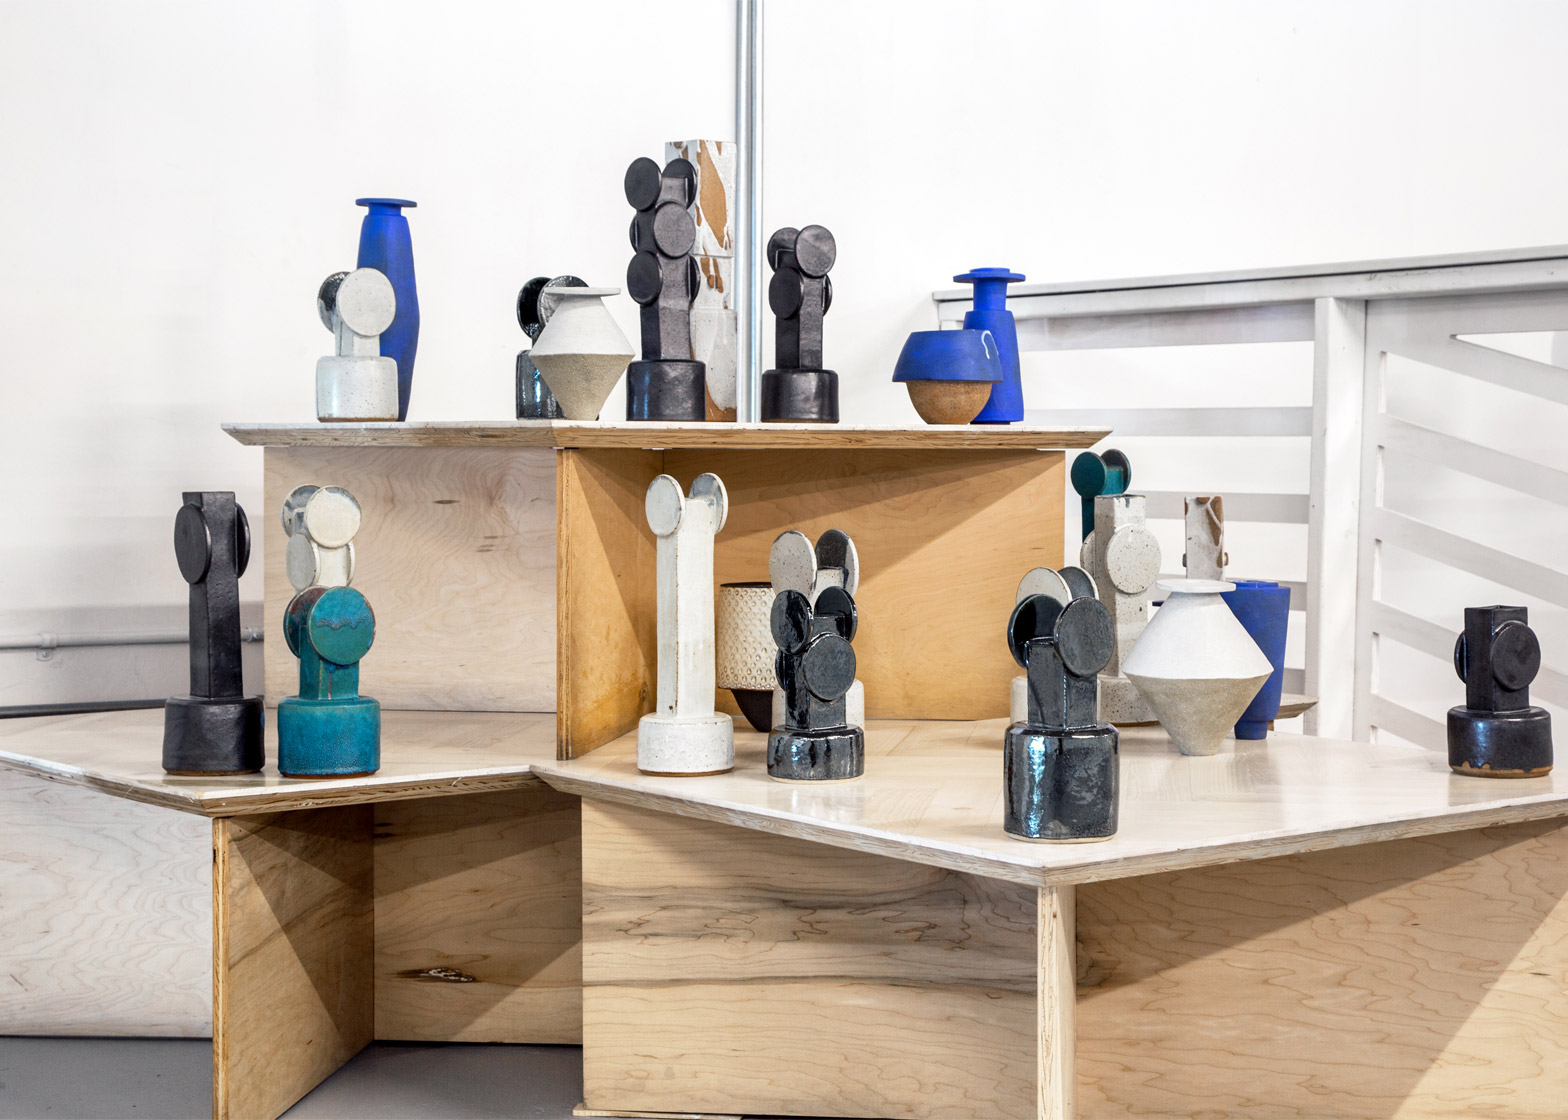 Site Specific LA exhibition by Sight Unseen